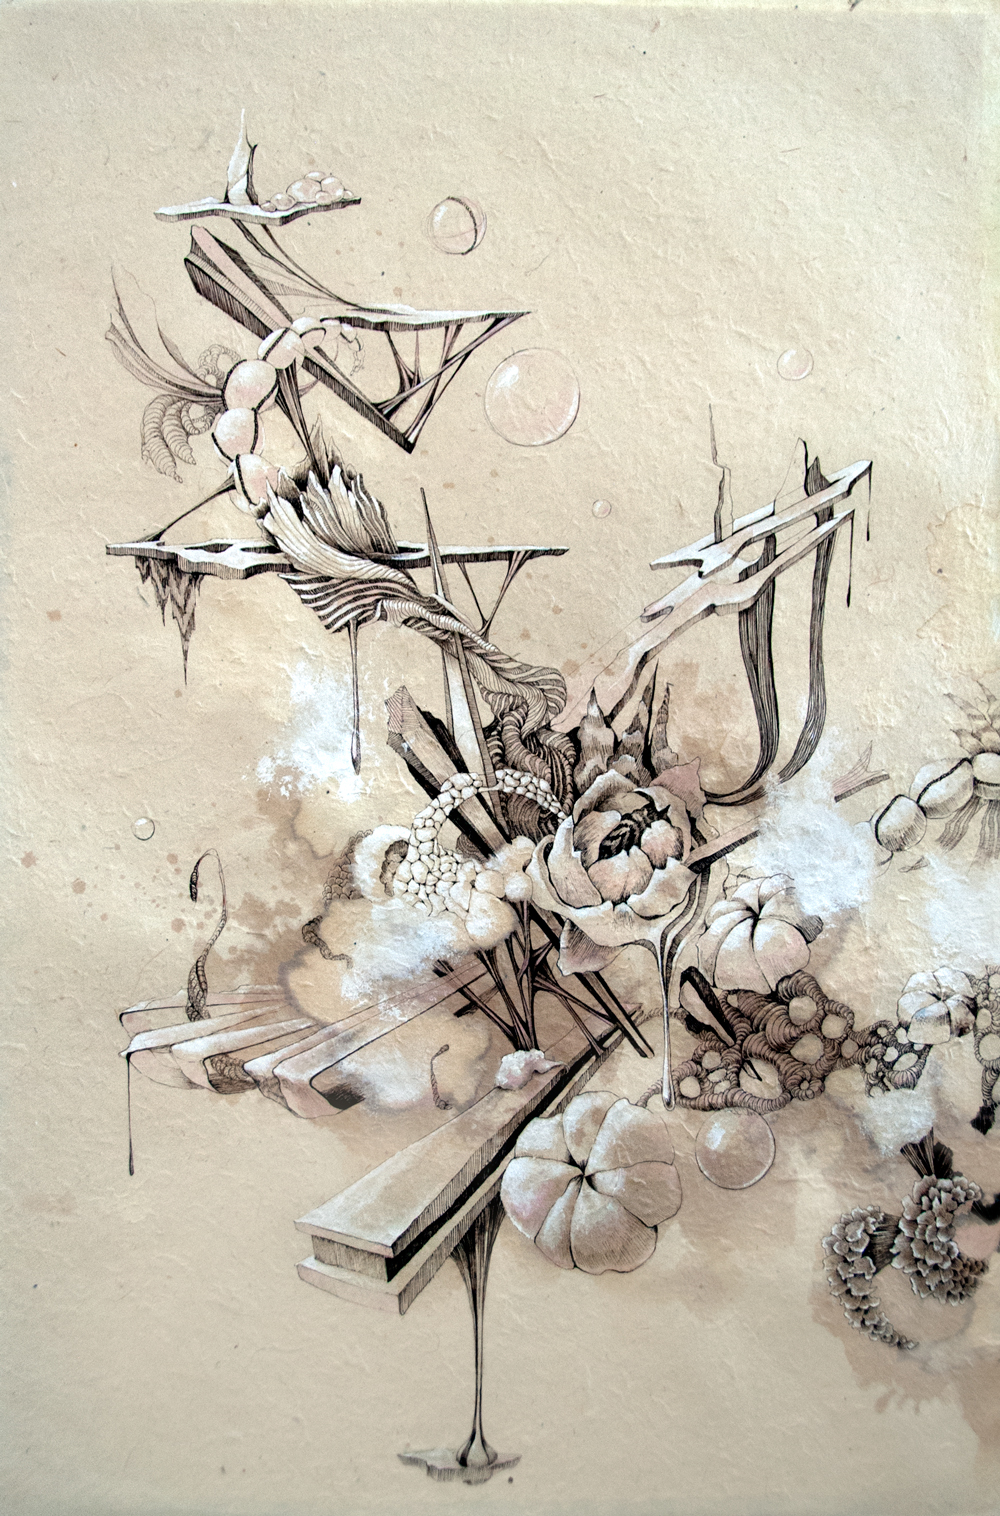 WEB_MorganShowDrawing.jpg